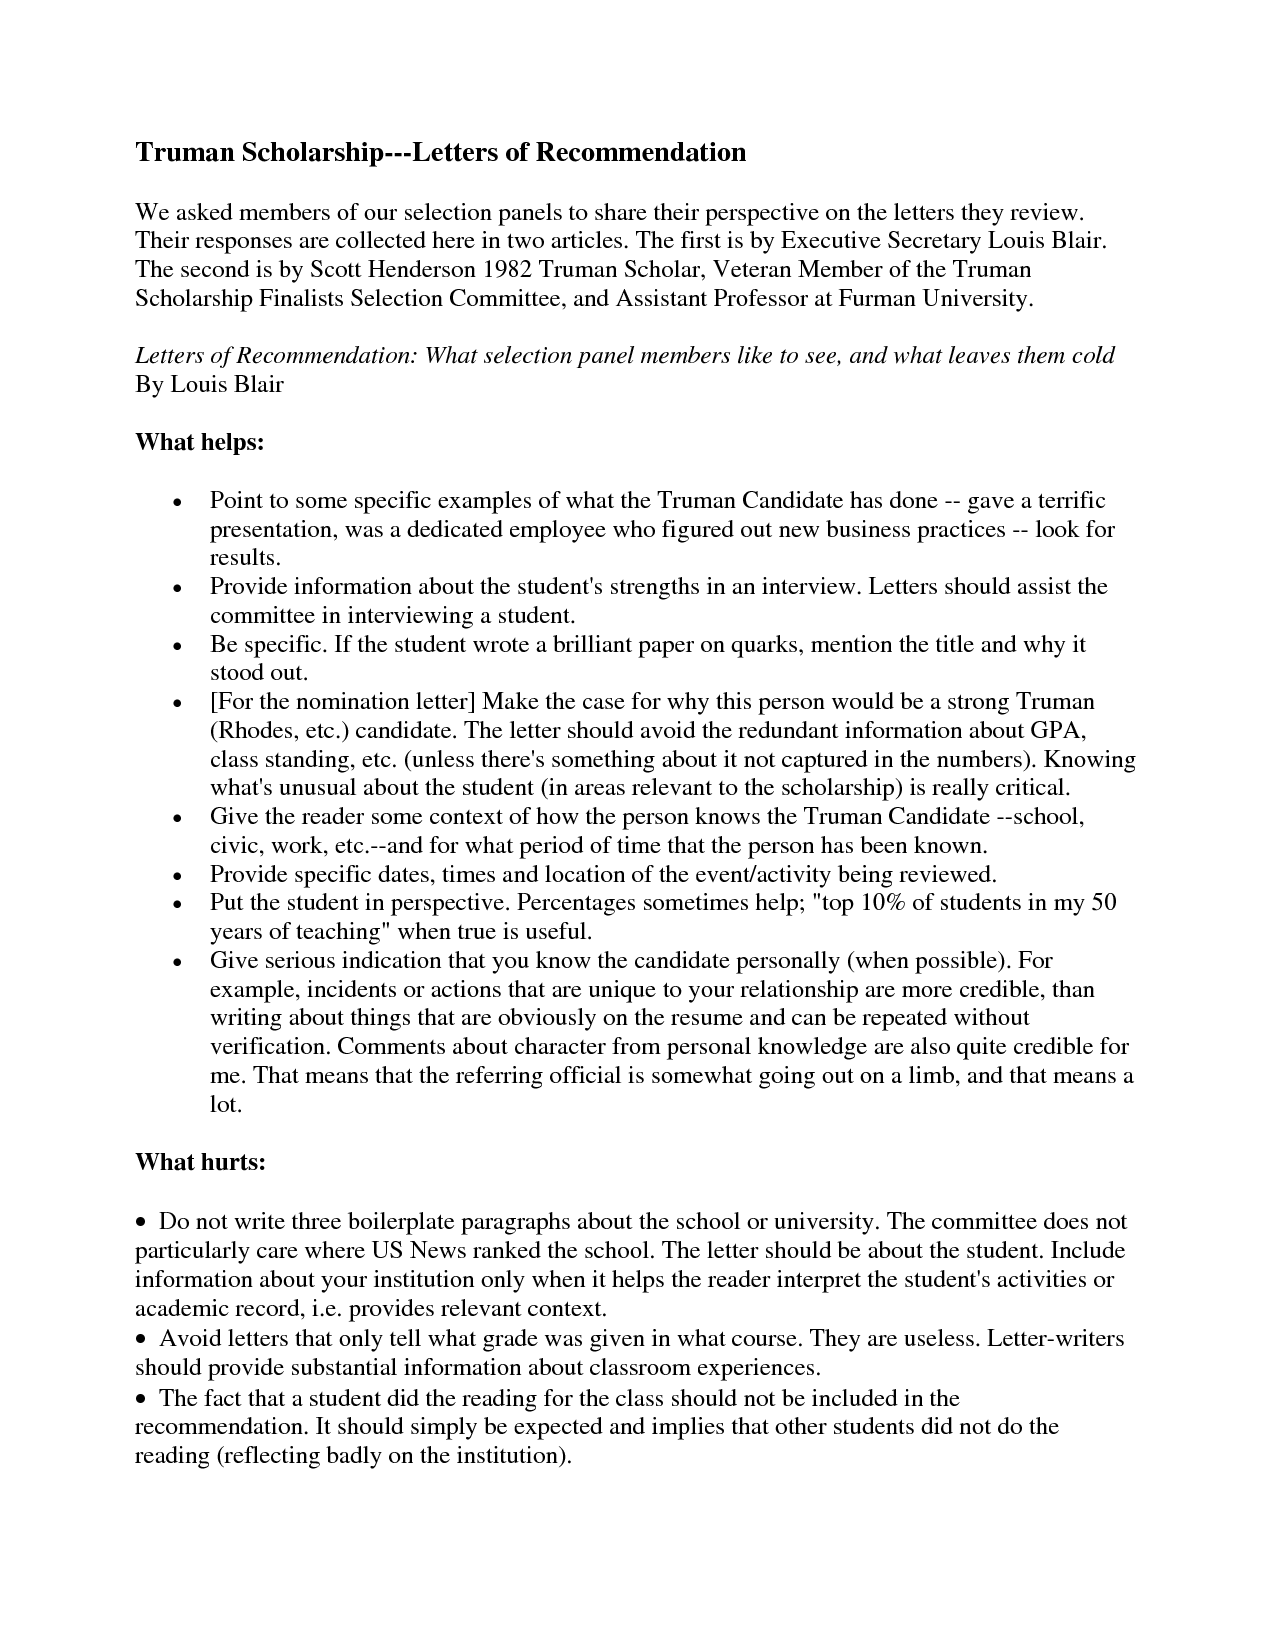 011 Essay Example Qualities Of Good Cover Letters With Letter And Scholarship Recommendation Hr0thxwq 1275x1650px What Are Formidable The A Leader Characteristics Pdf Introduction Make Full